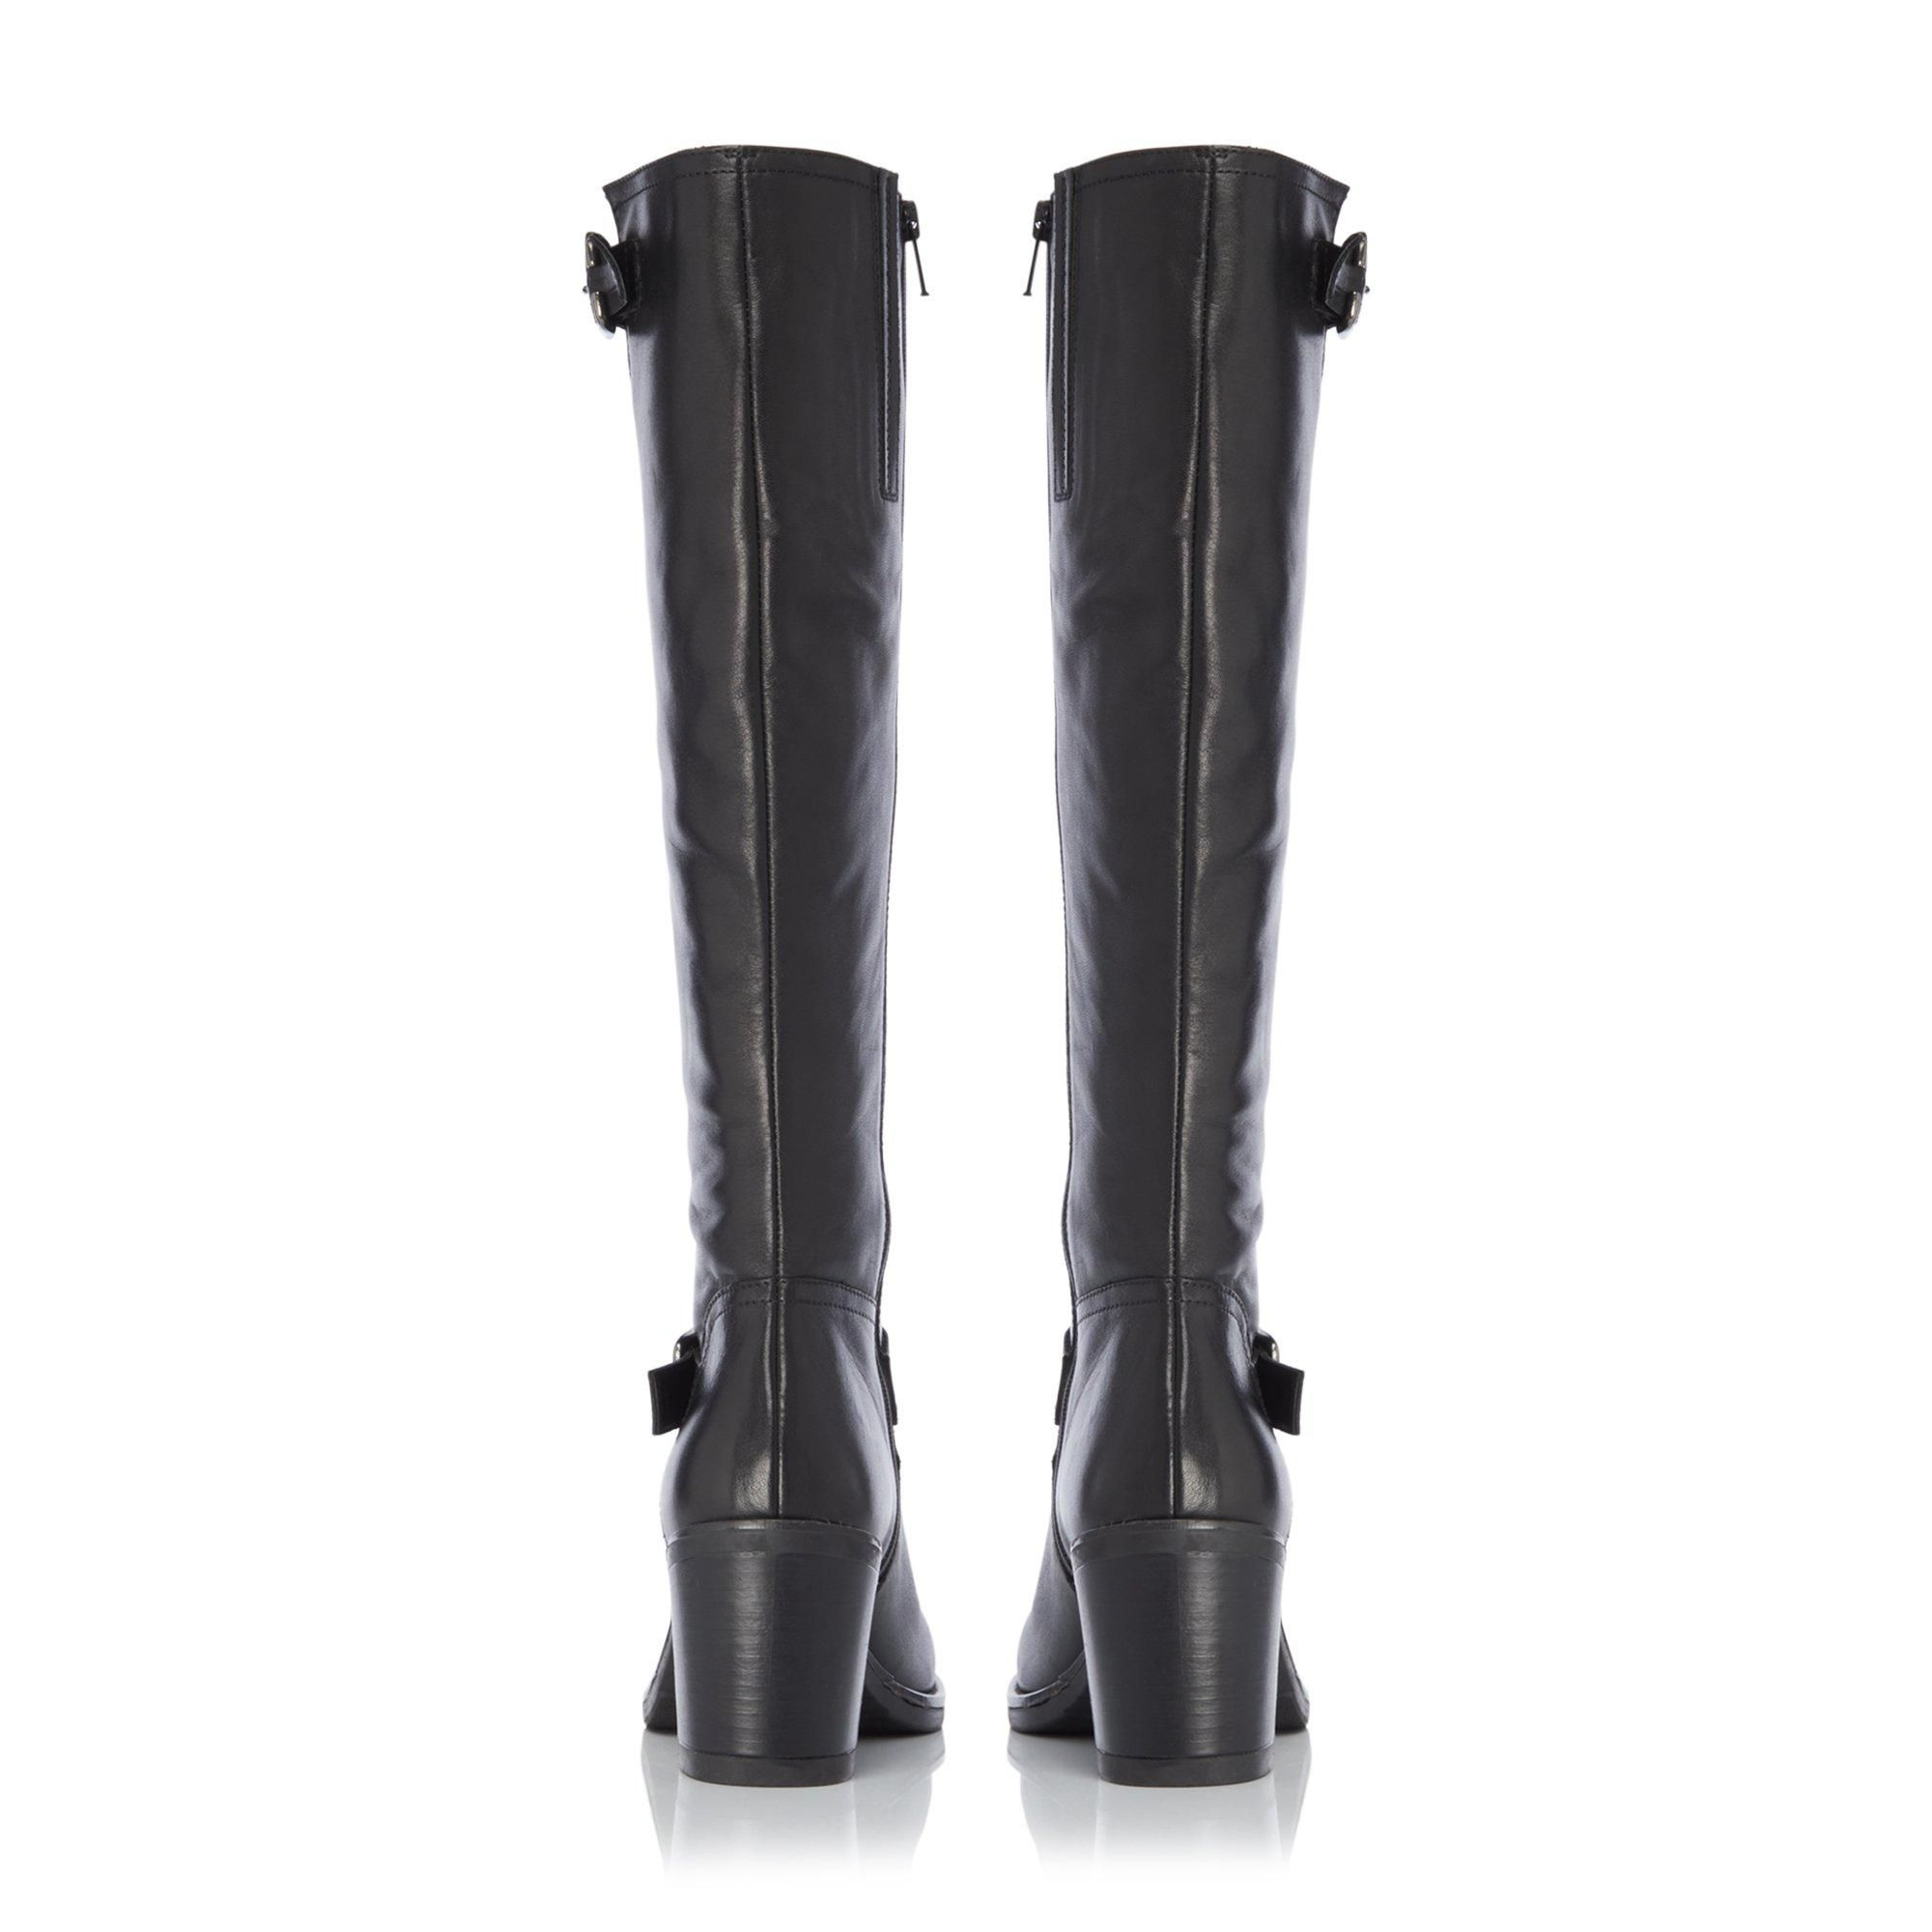 Dune Ladies TRELIS Double Buckle Block Heel Knee High Boots